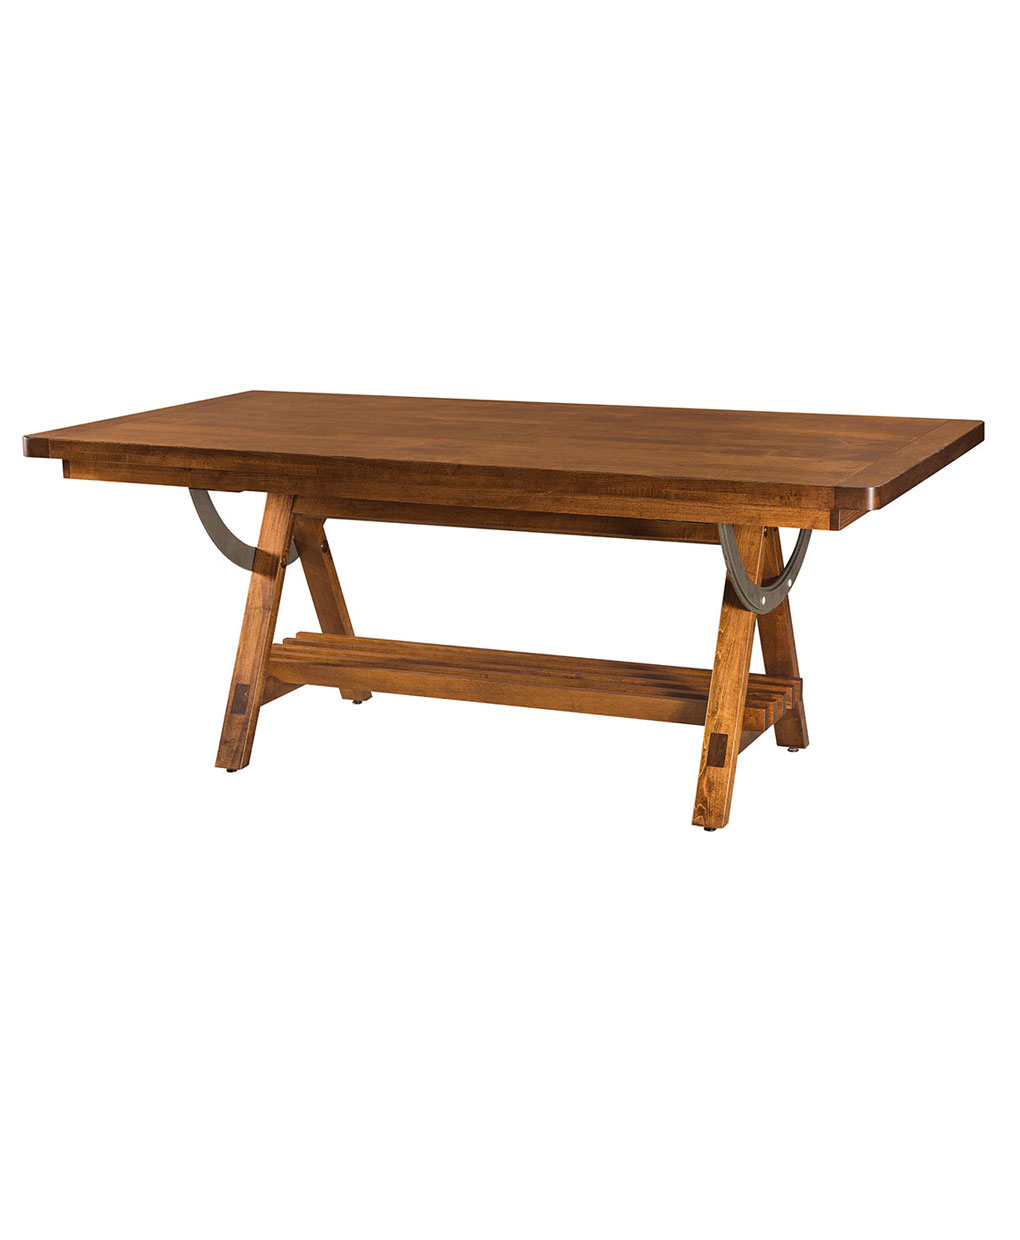 Amish Made Apgar Village Trestle Table [Side View]